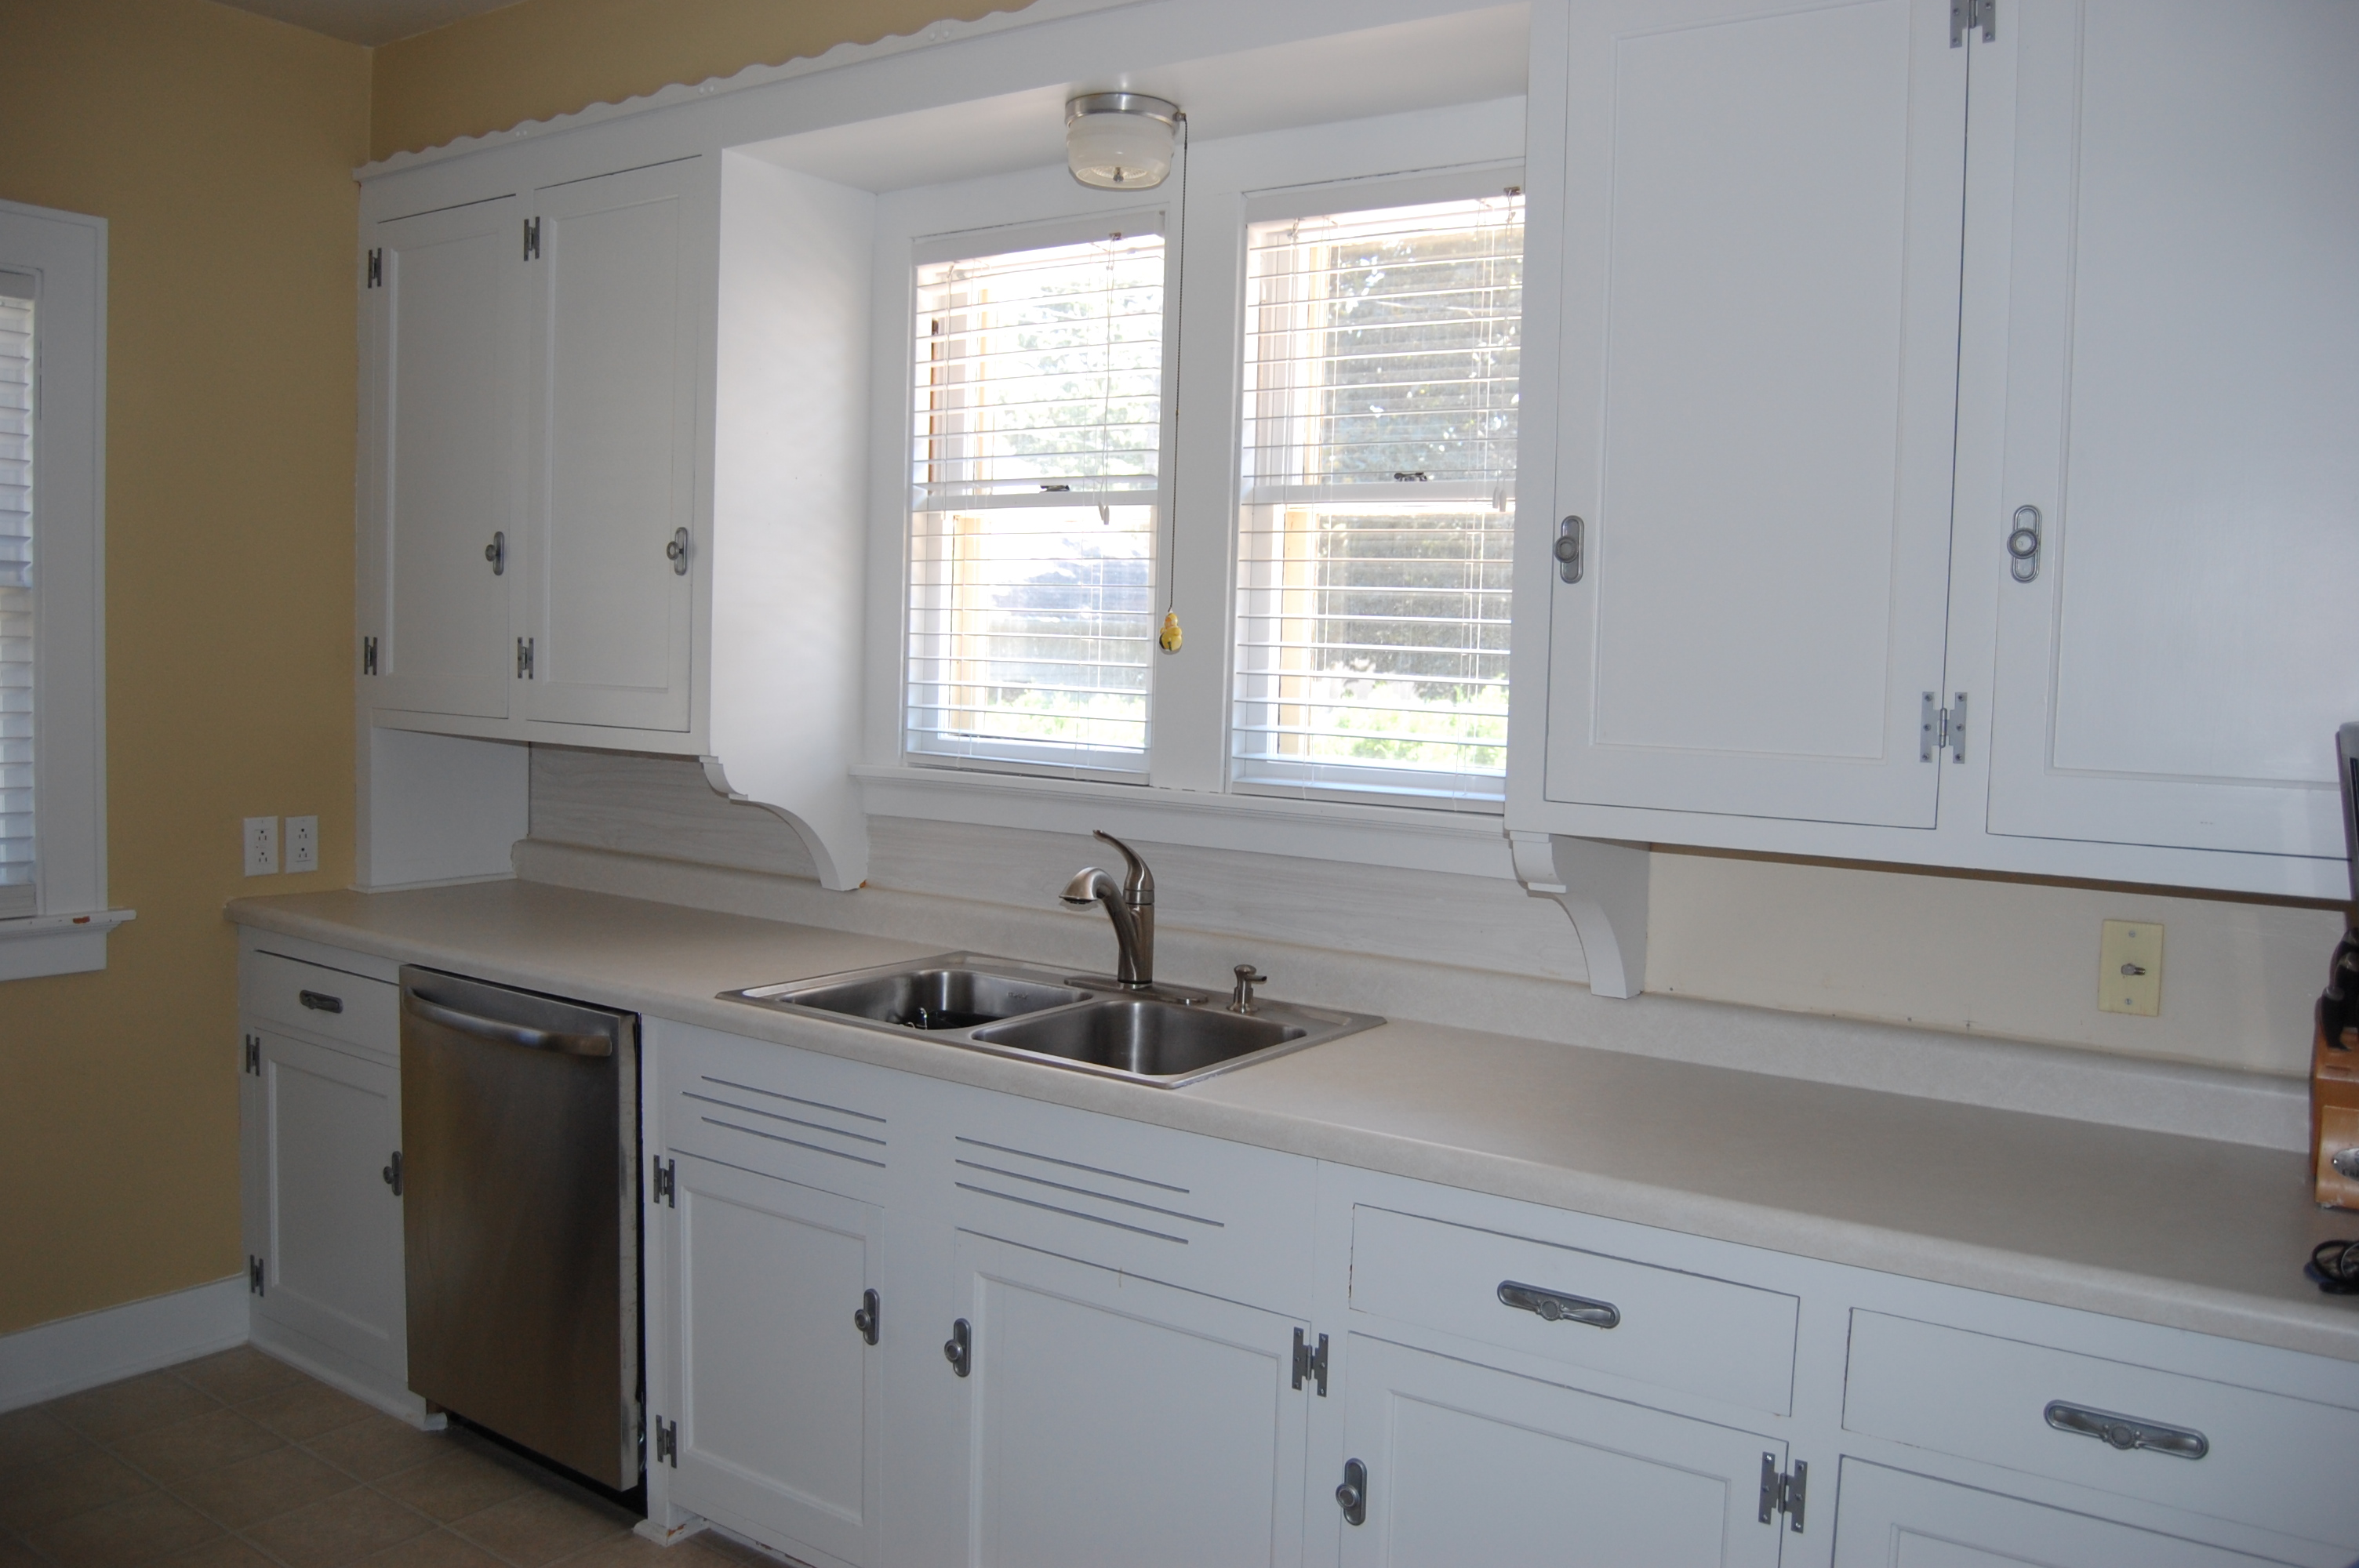 How To Prep Kitchen Cabinets For Painting How To Painting Kitchen Cabinets